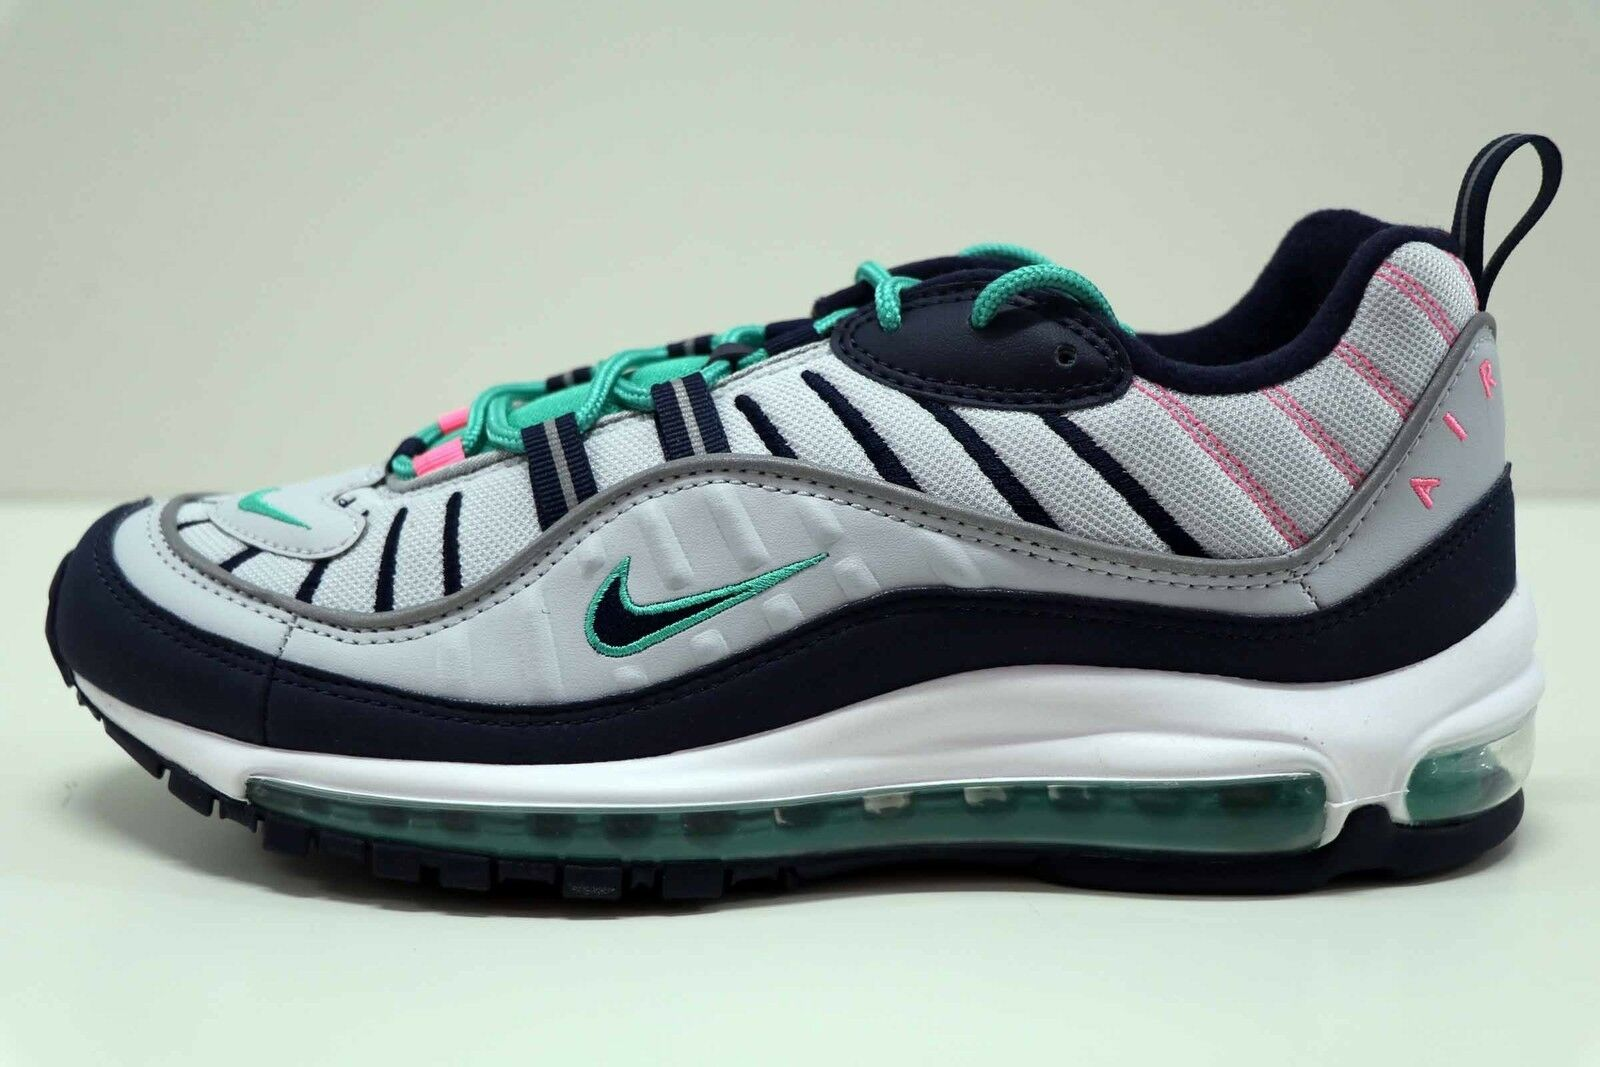 Nike Air Max Beach 98 South Beach Max PURE PLATINUM OBSIDIAN 640744 005 Nuevo En Caja fc01d0